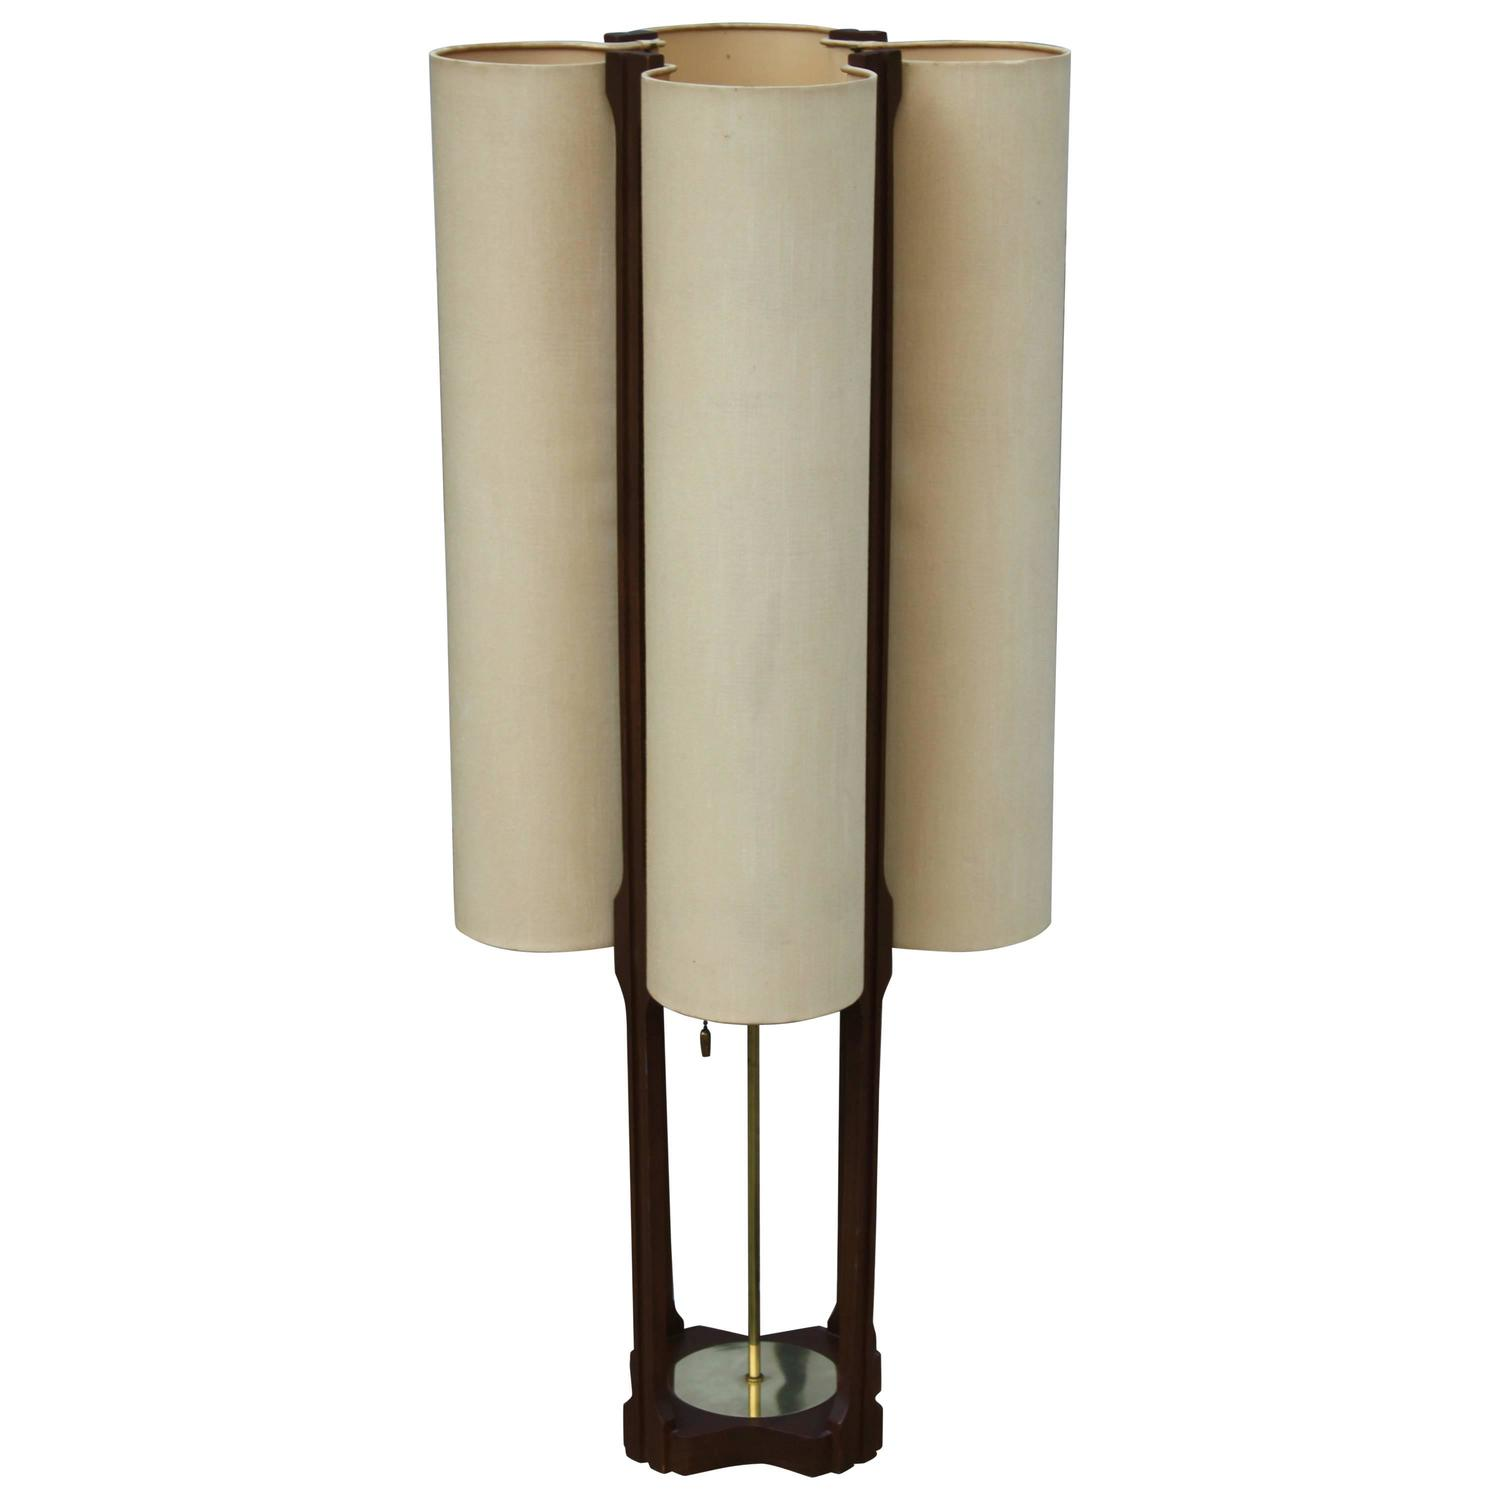 adrian pearsall style mid century modern large table lamp. Black Bedroom Furniture Sets. Home Design Ideas